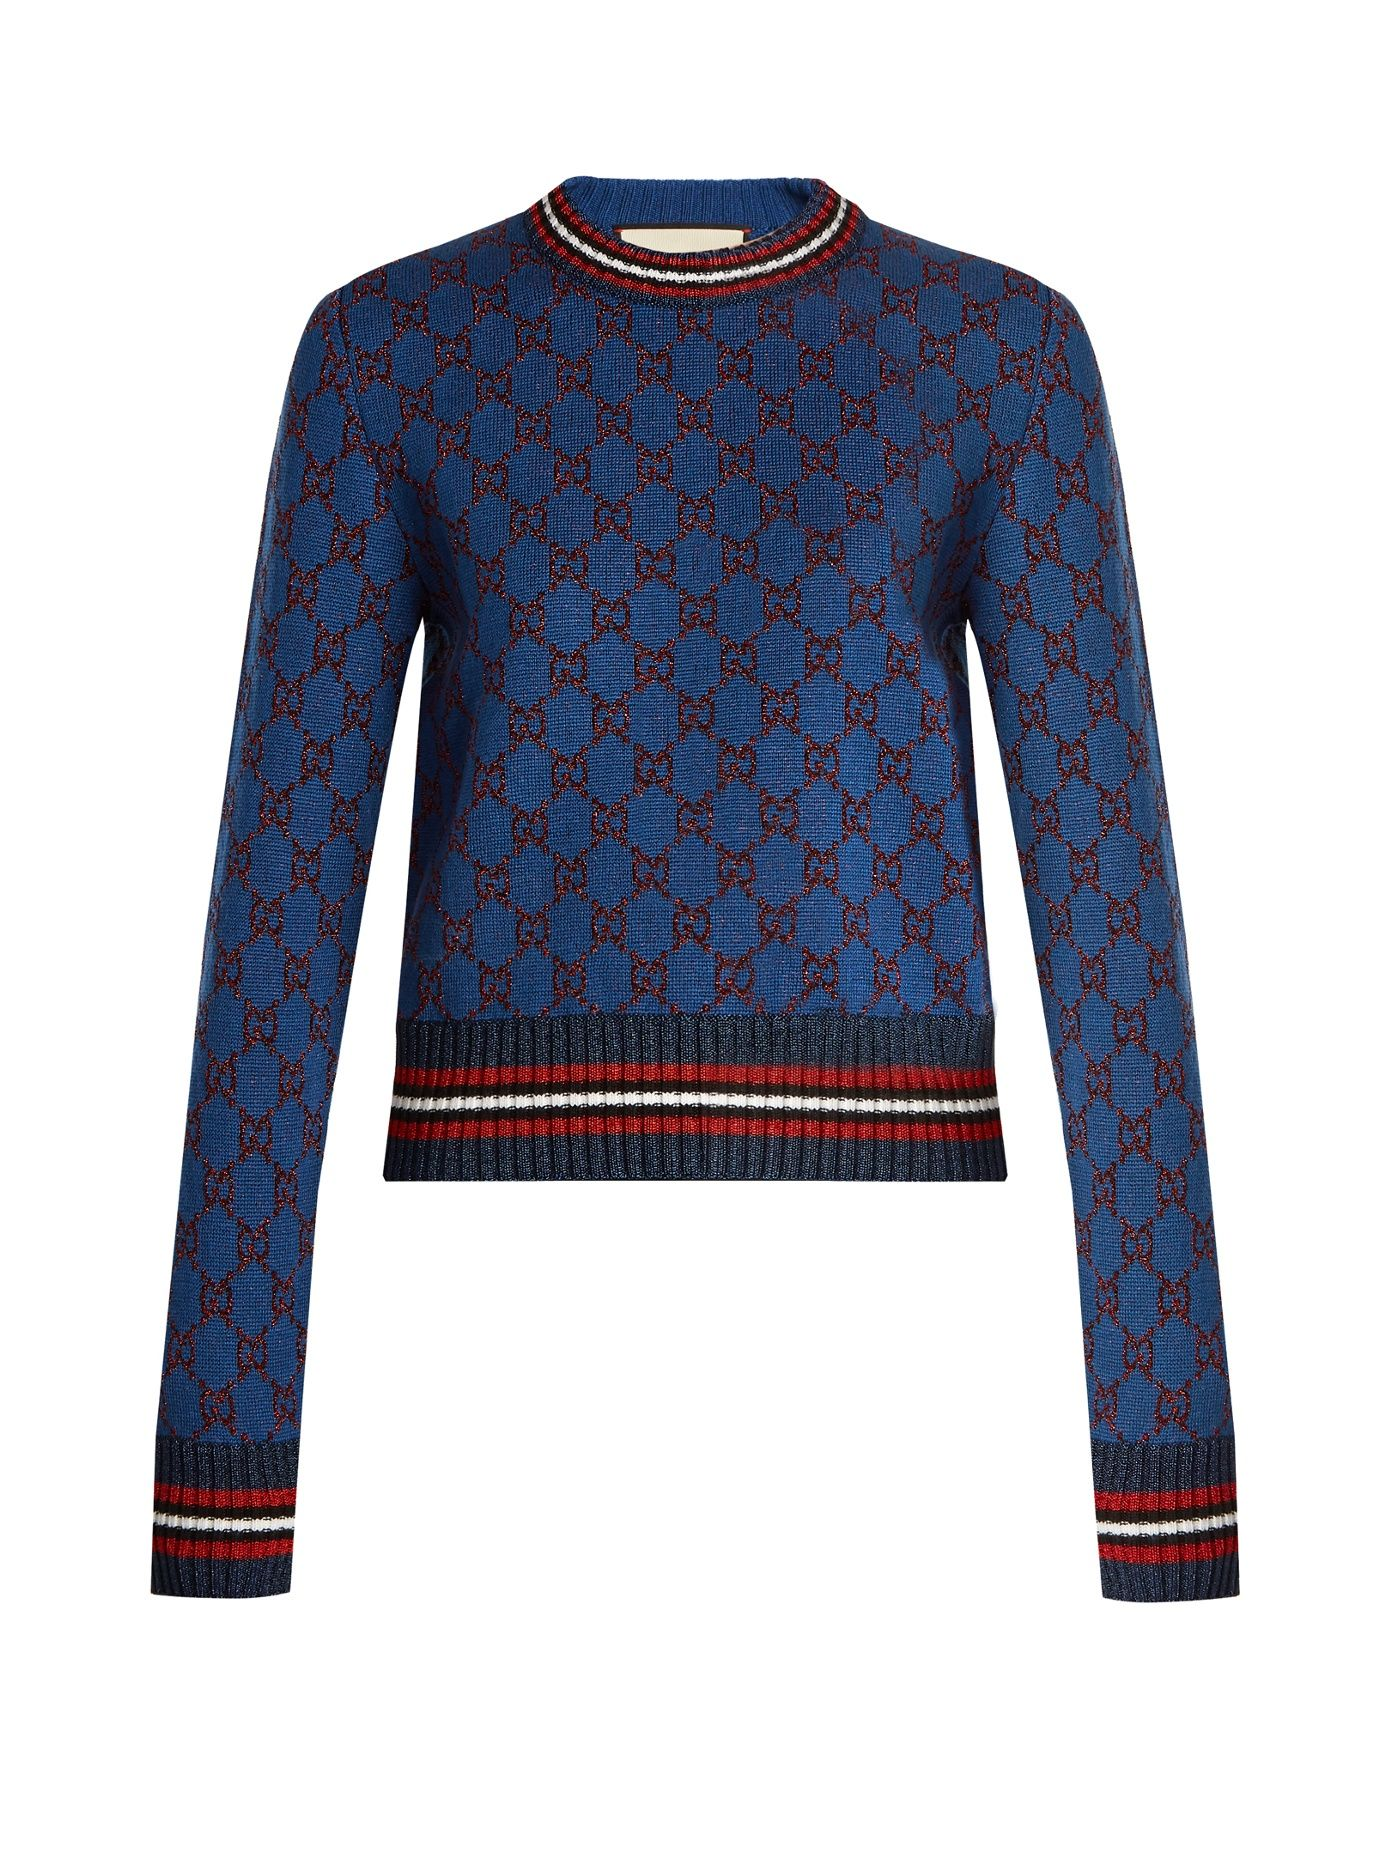 30432a189b Click here to buy Gucci GG jacquard-knit cropped sweater at ...